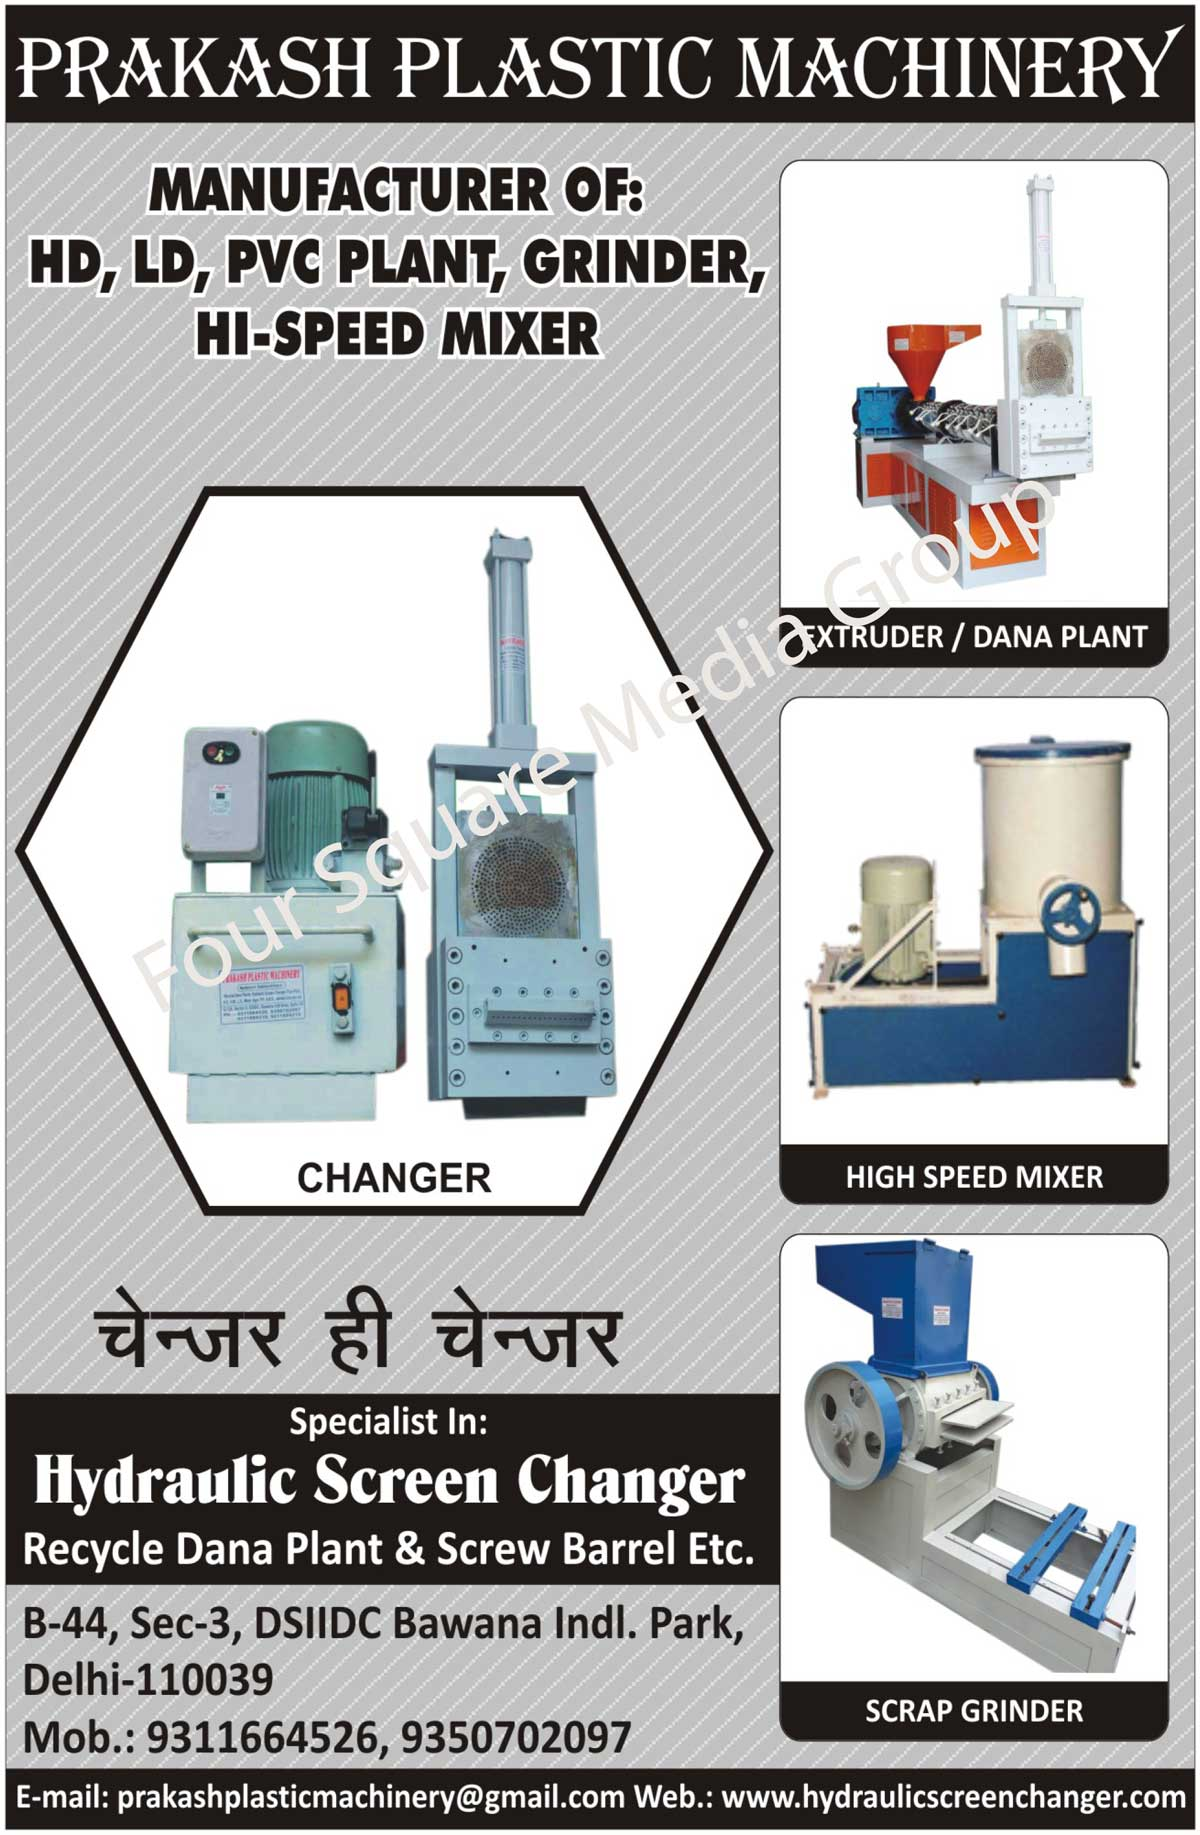 Hydraulic Screen Changers, Plastic Extruder Plants, Recycle Dana Plants, Plastic Scrap Grinders, Traction Units, Helical Gear Boxes, Agglomerators, Screws Diameters, Barrels Diameters, High Speed Plastic Mixers, Stand Cutters, Plastic Washing Machines, Pet Bottle Washing Machines, Jar Washing Machines, HD Plants, LD Plants, PVC Plants, Screw Barrel